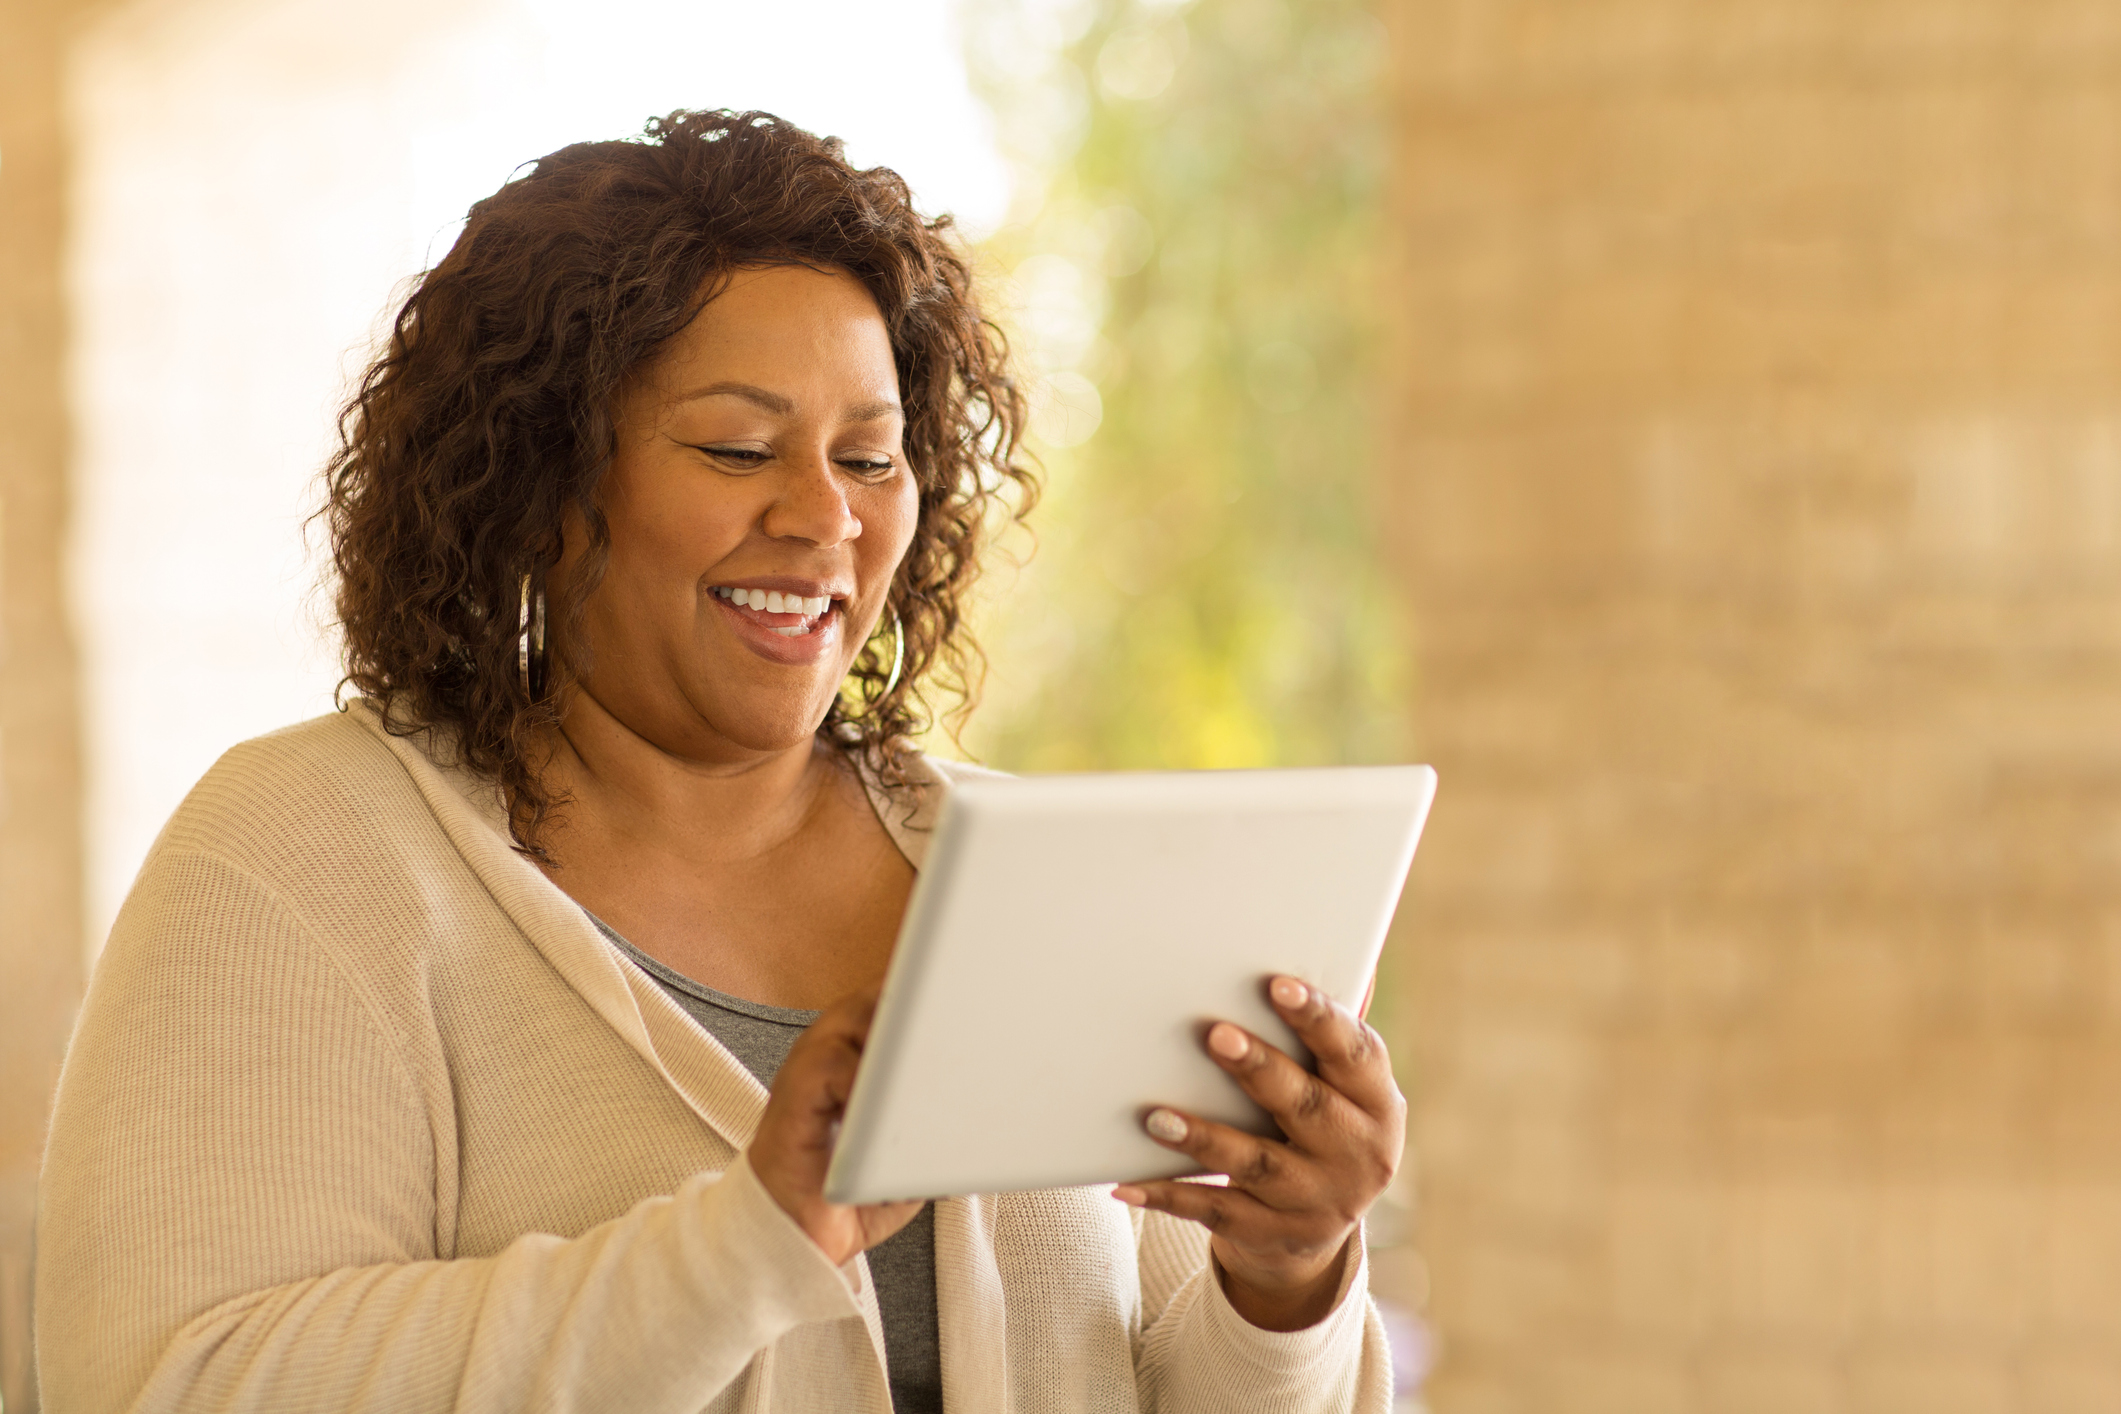 Mature woman working on a tablet